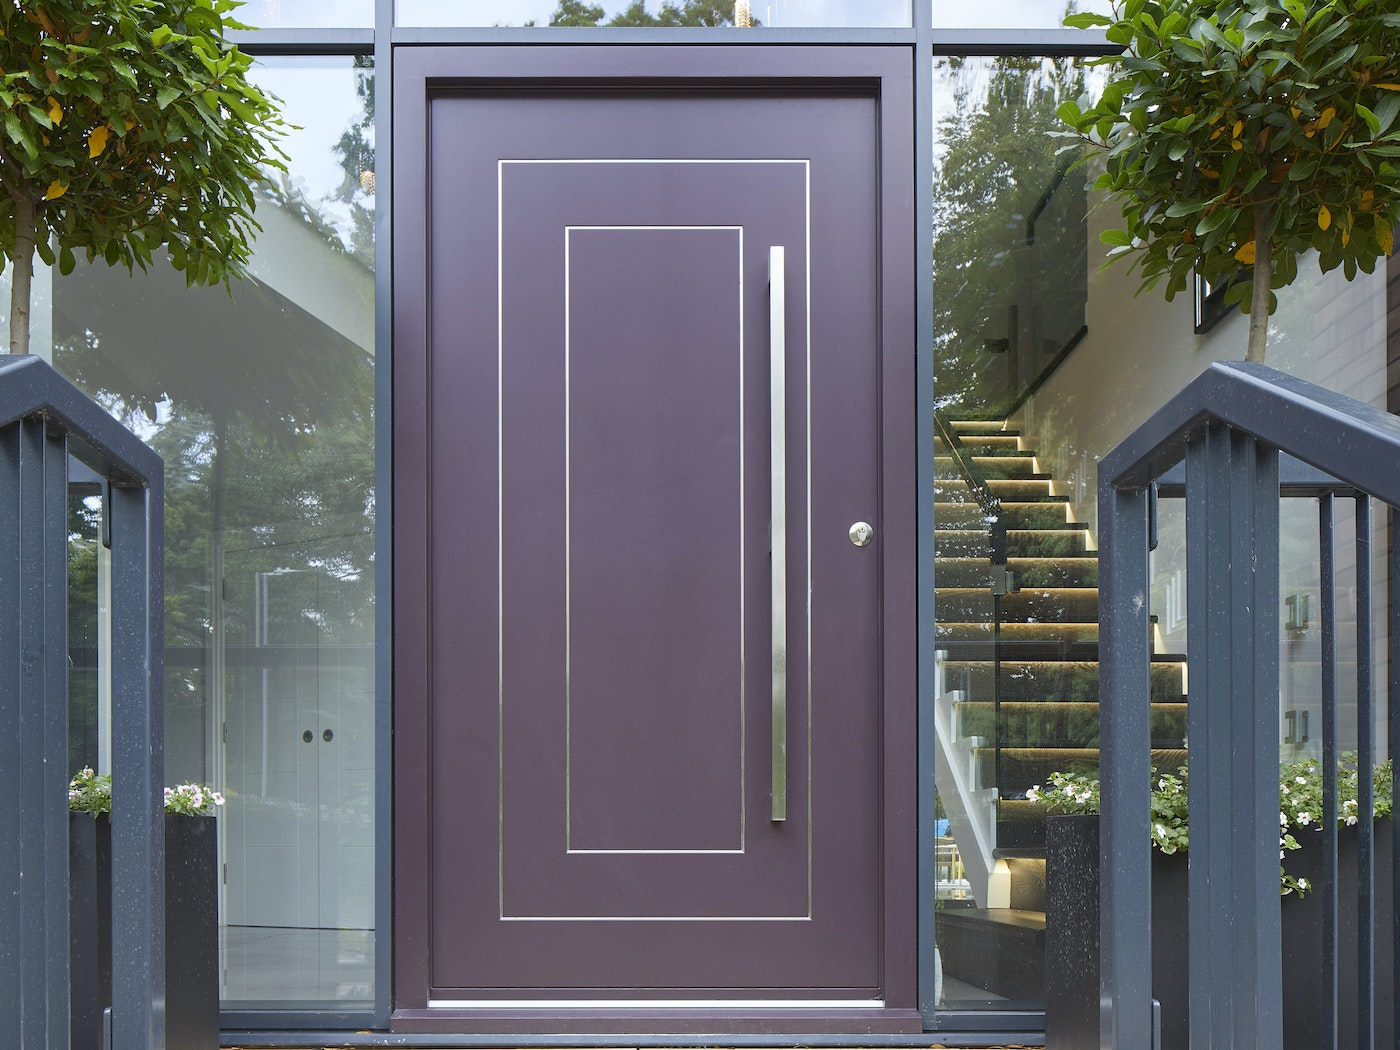 This Form purple front door features stainless steel strips in rectangular or square design and these elevate the contemporary styling